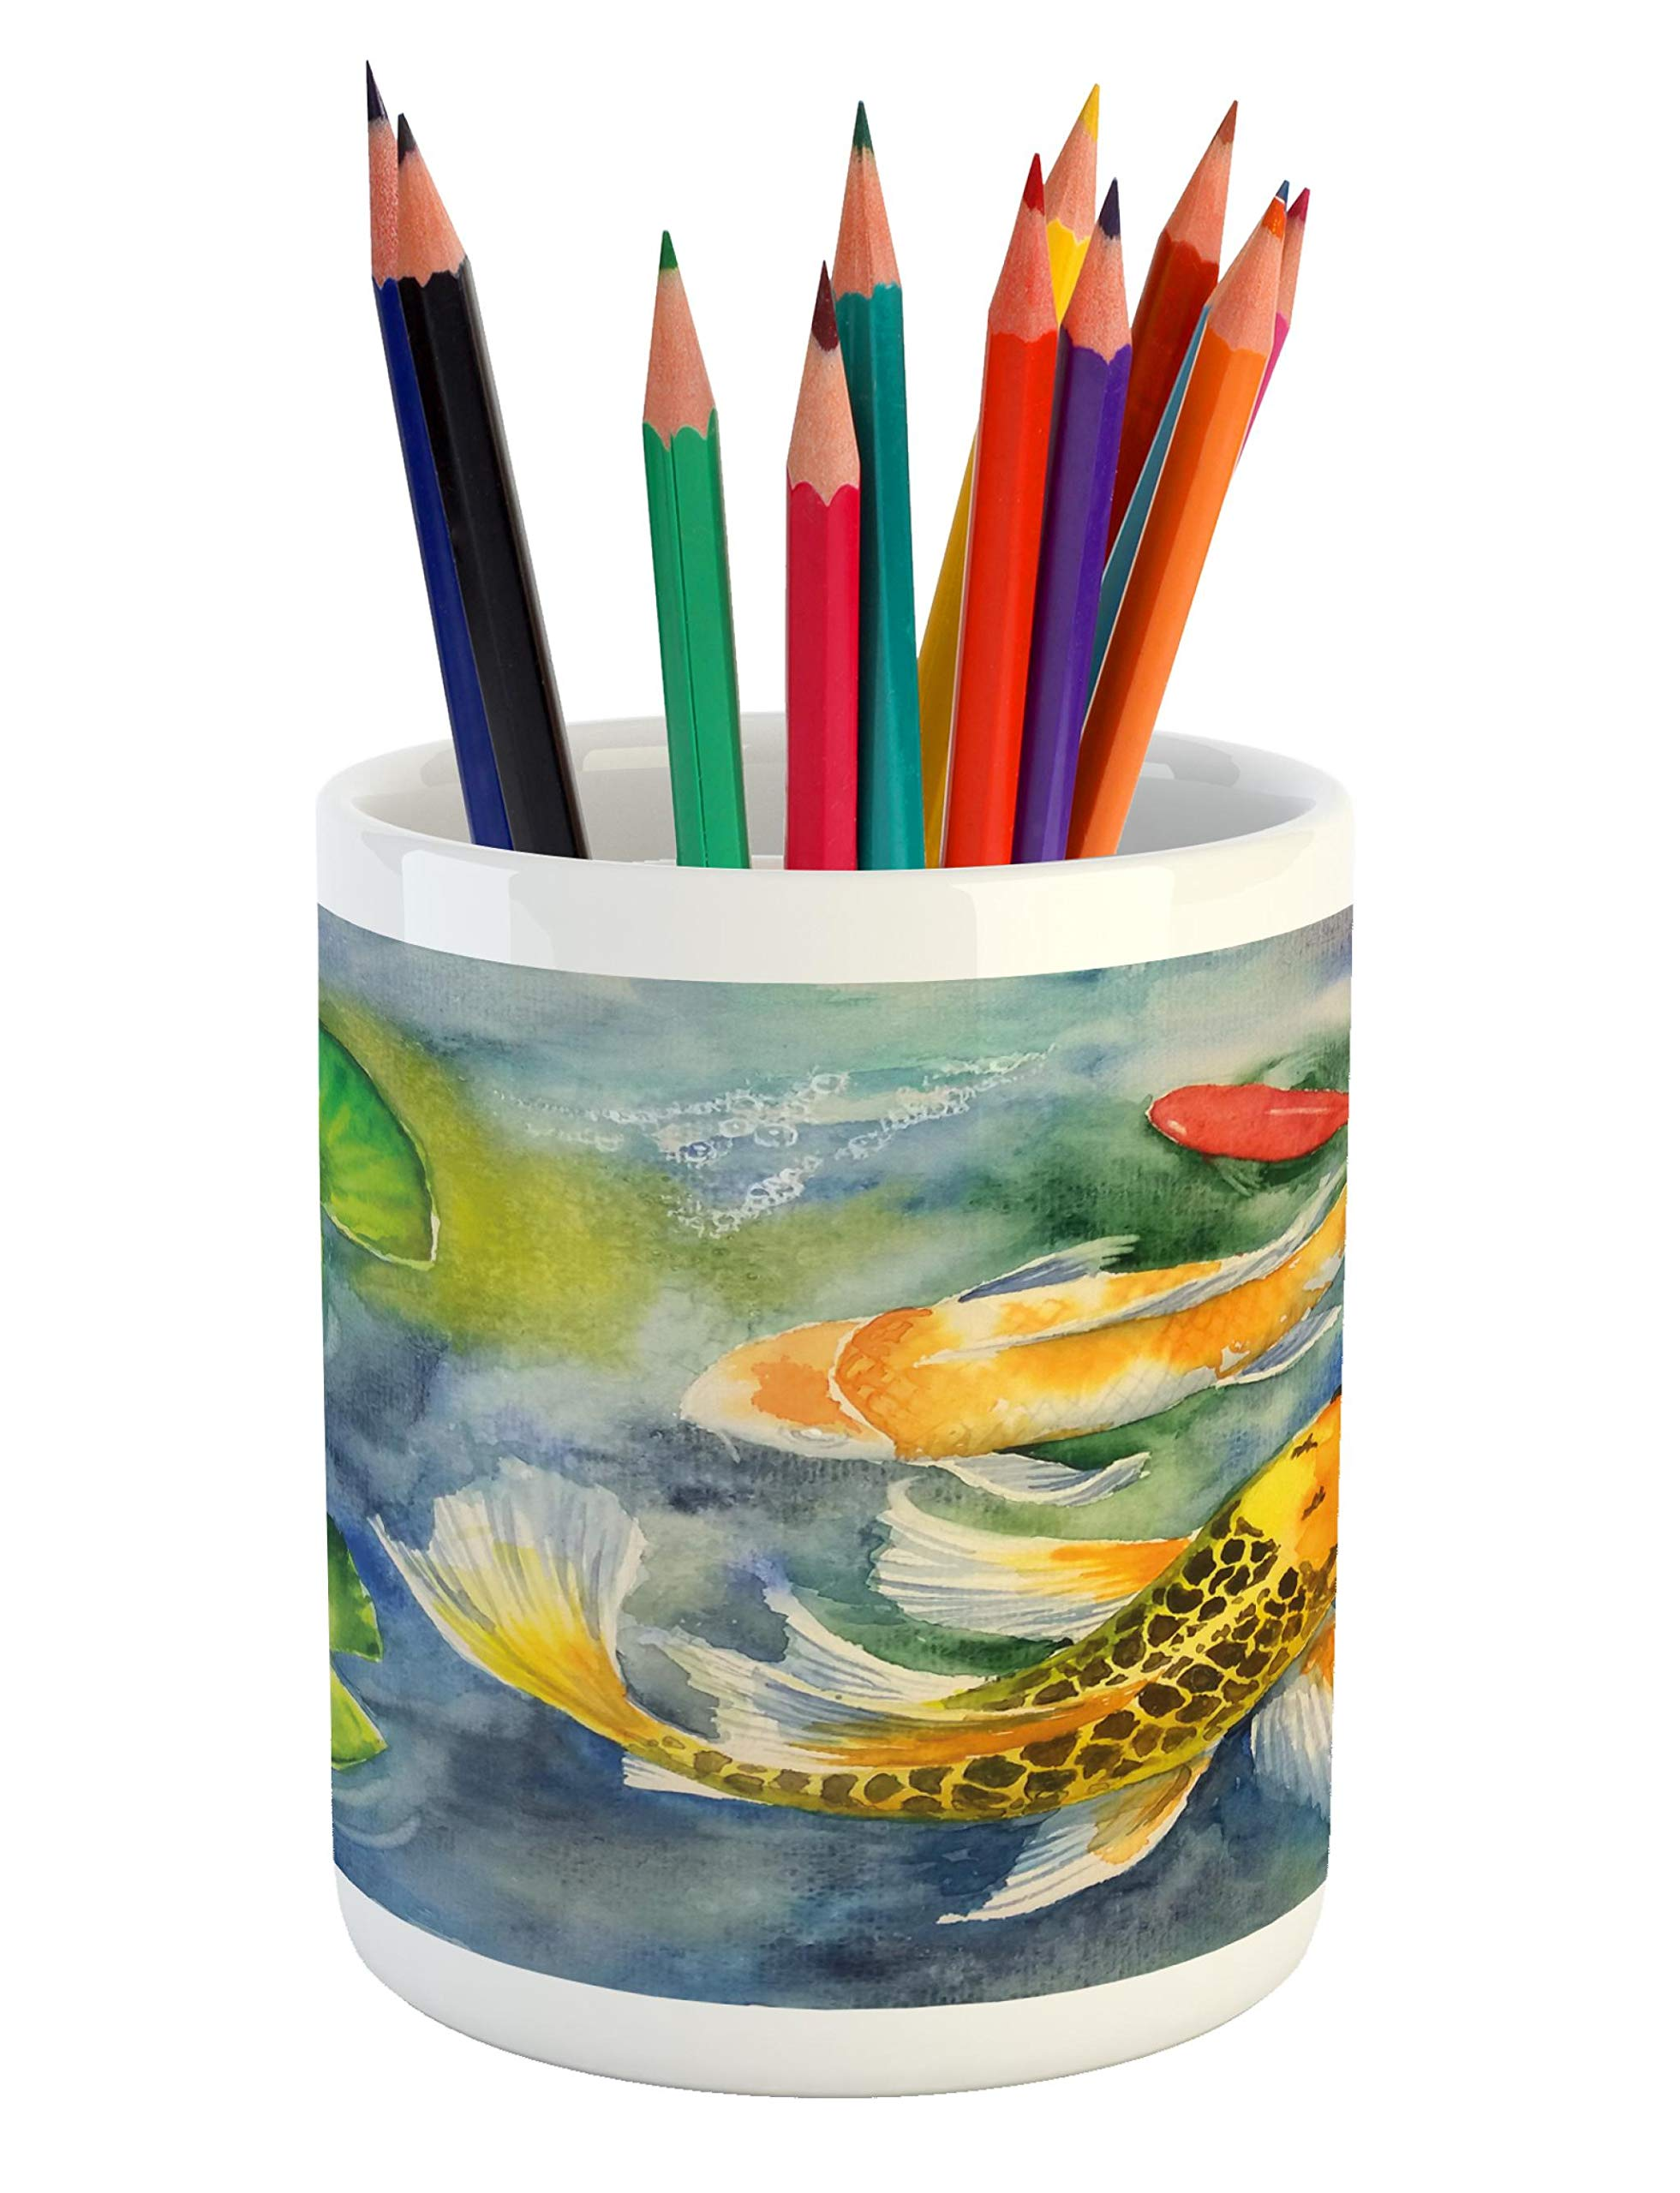 Lunarable Koi Fish Pencil Pen Holder, Lillies Marine Life Colorful Watercolor Drawing of Divine Asian Animal, Printed Ceramic Pencil Pen Holder for Desk Office Accessory, Violet Blue Multicolor